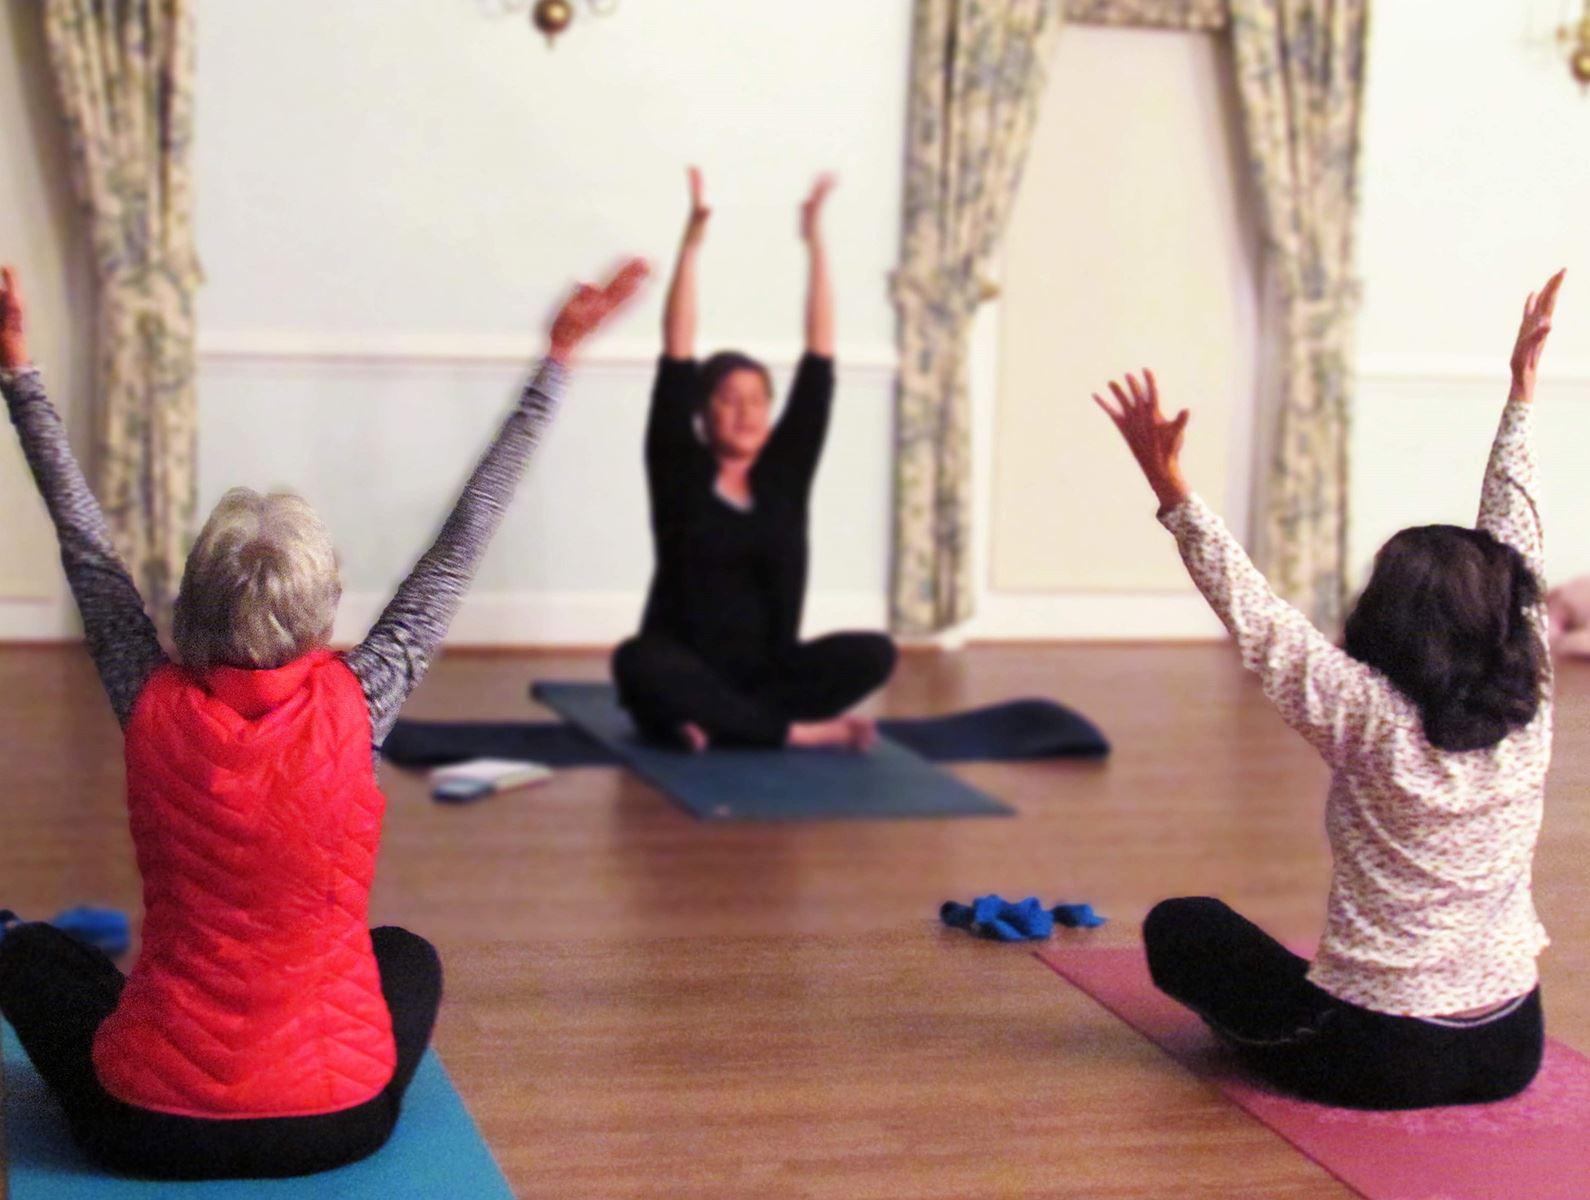 Yoga Opens in new window